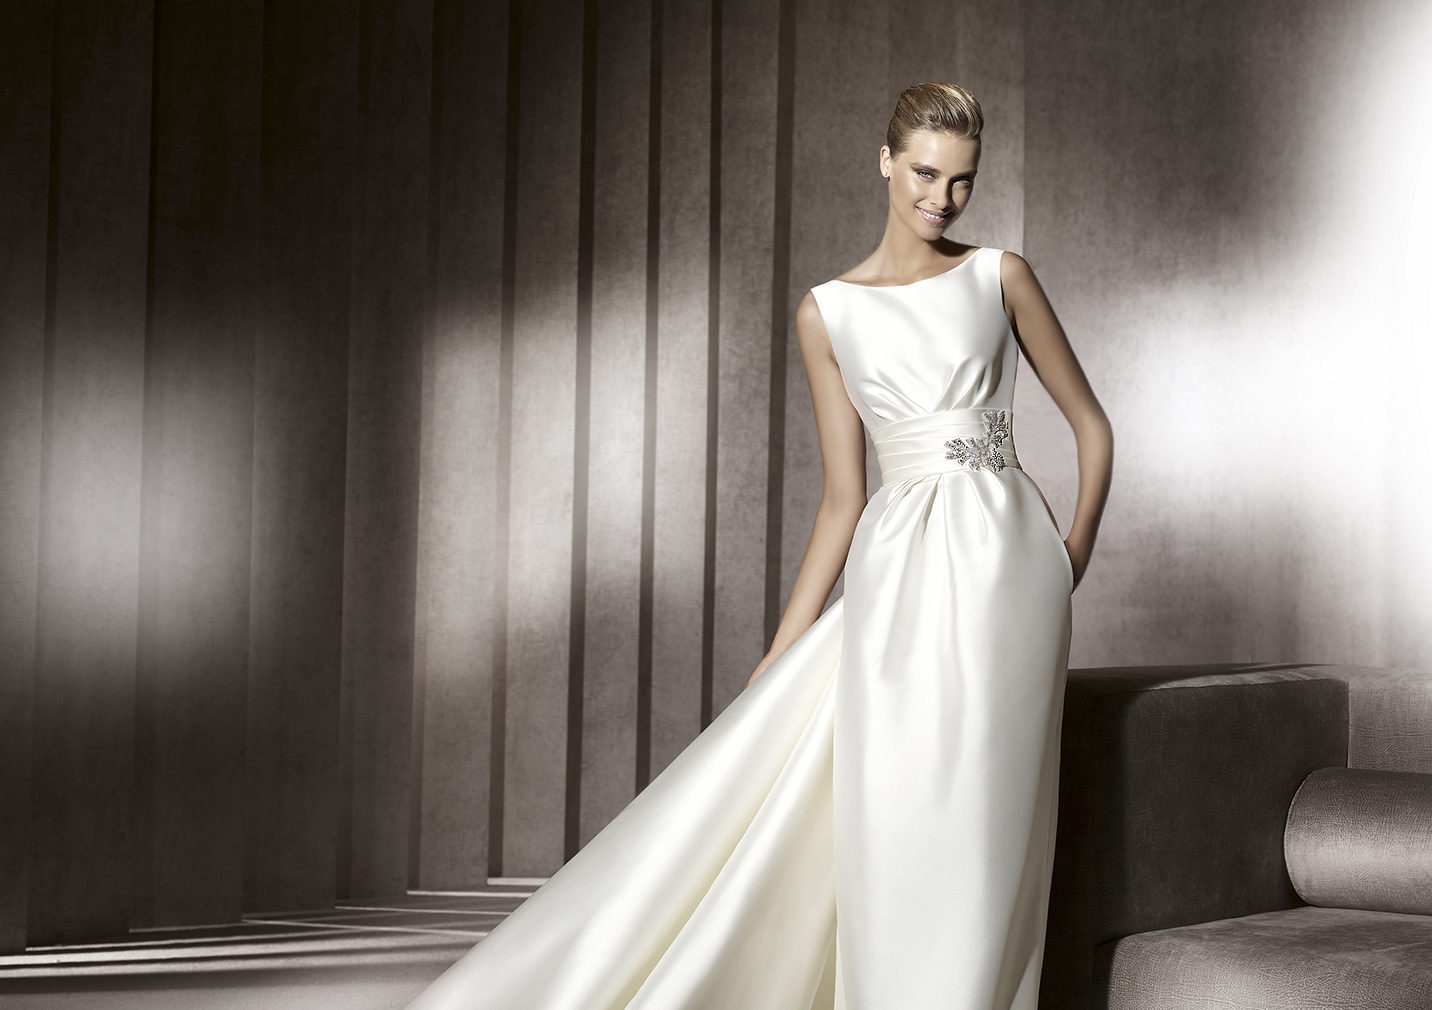 Simple Wedding Dresses: How To Embellish Simple Wedding Dresses?